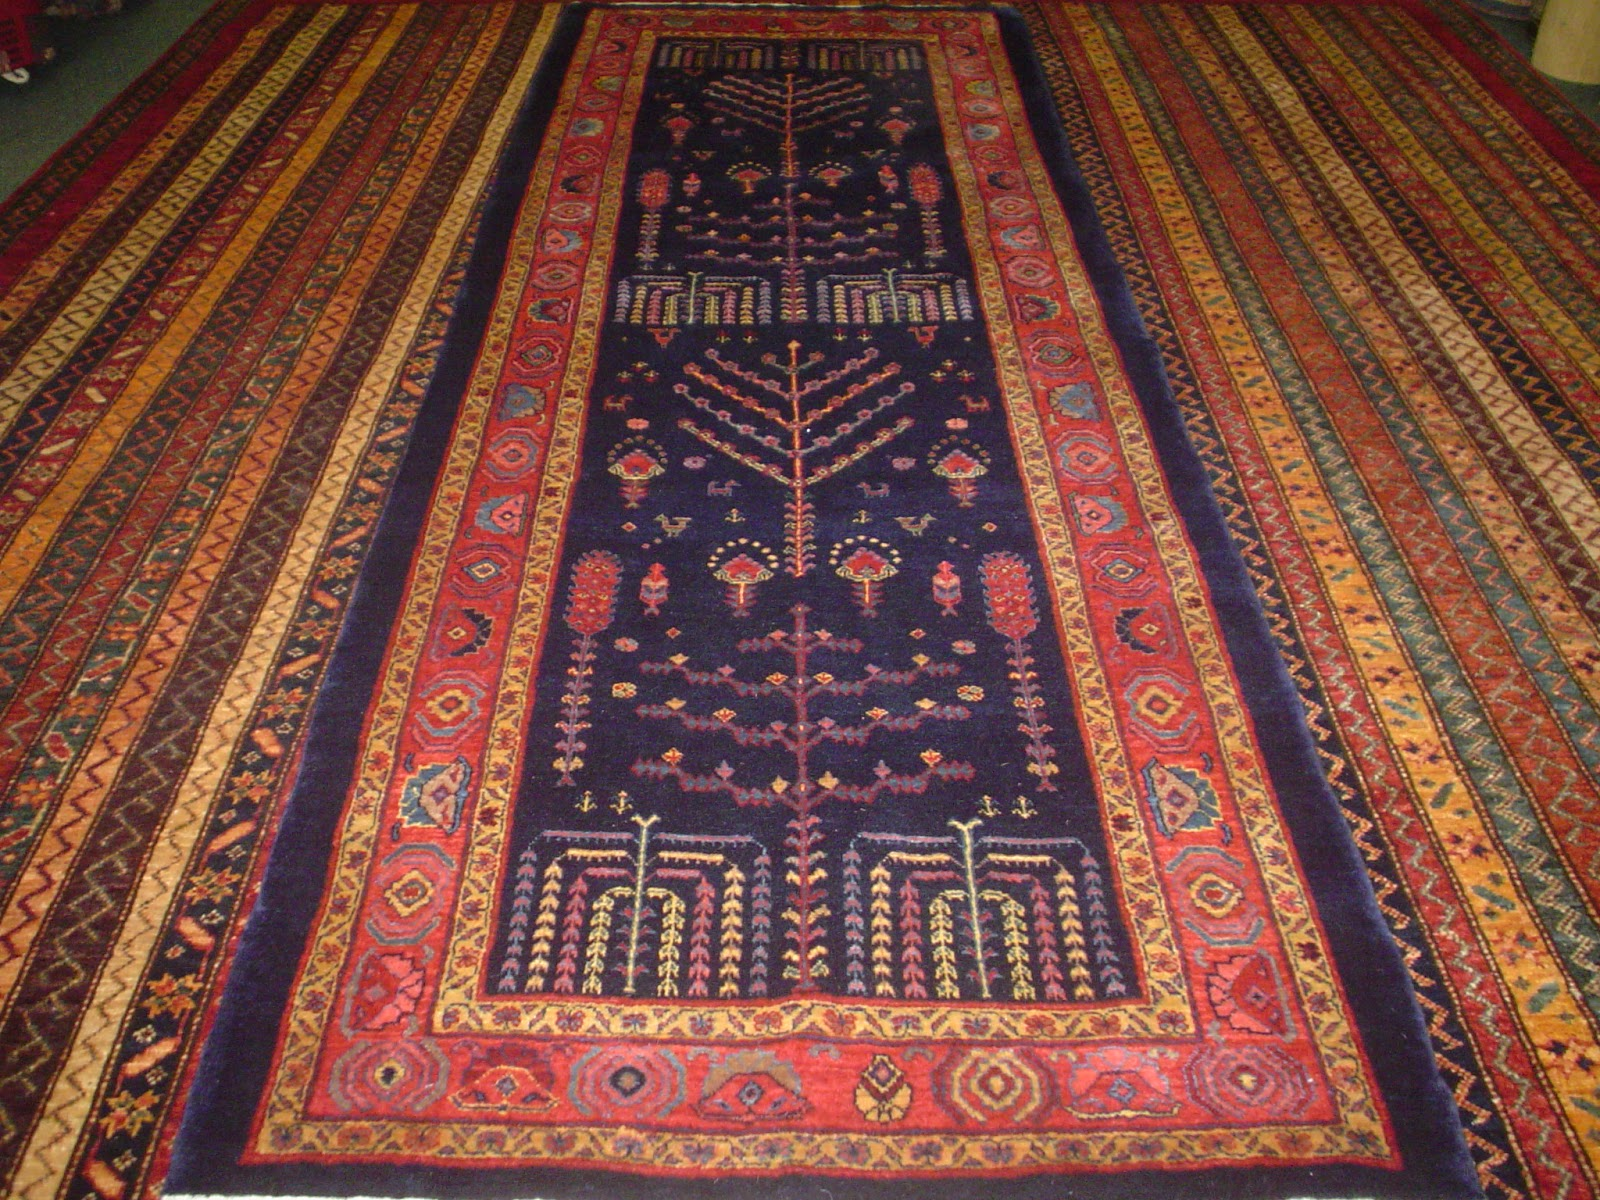 Undercoverruglover A Few New Beautiful Persian Rugs Added To My Collection And Video